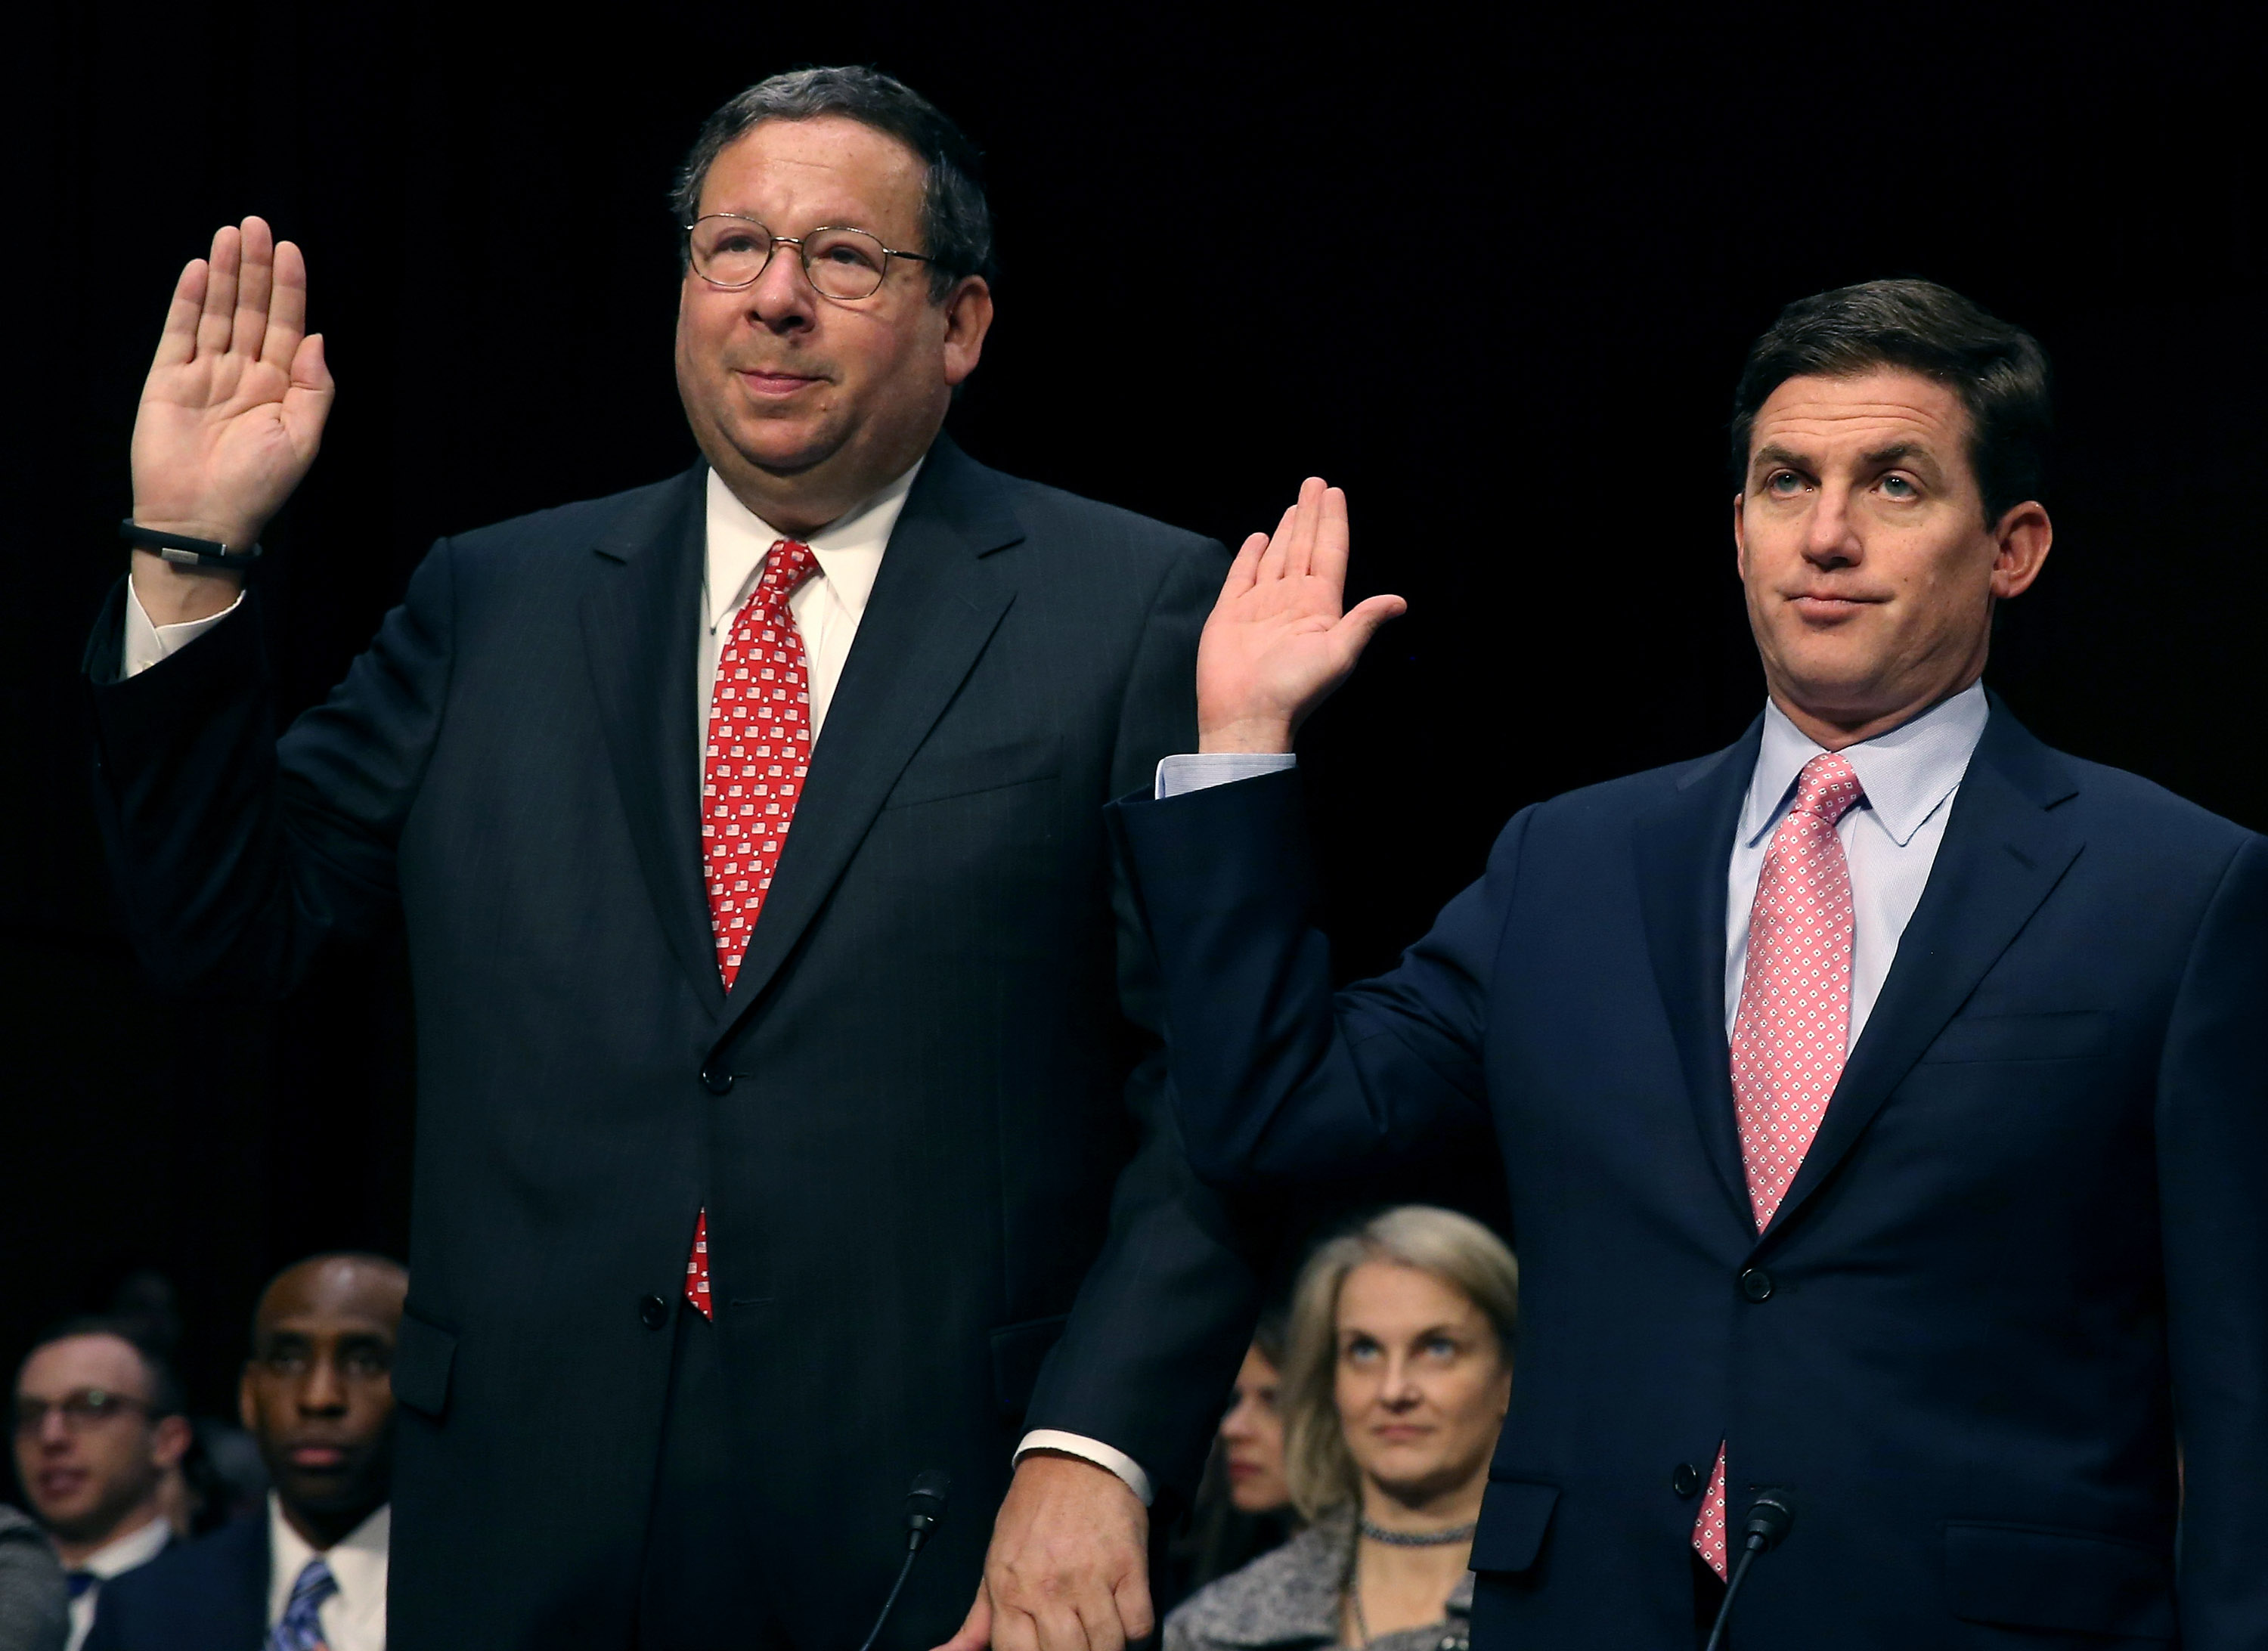 Executives for two of the least popular companies in America: David Cohen of Comcast and Arthur Minson of Time Warner Cable.